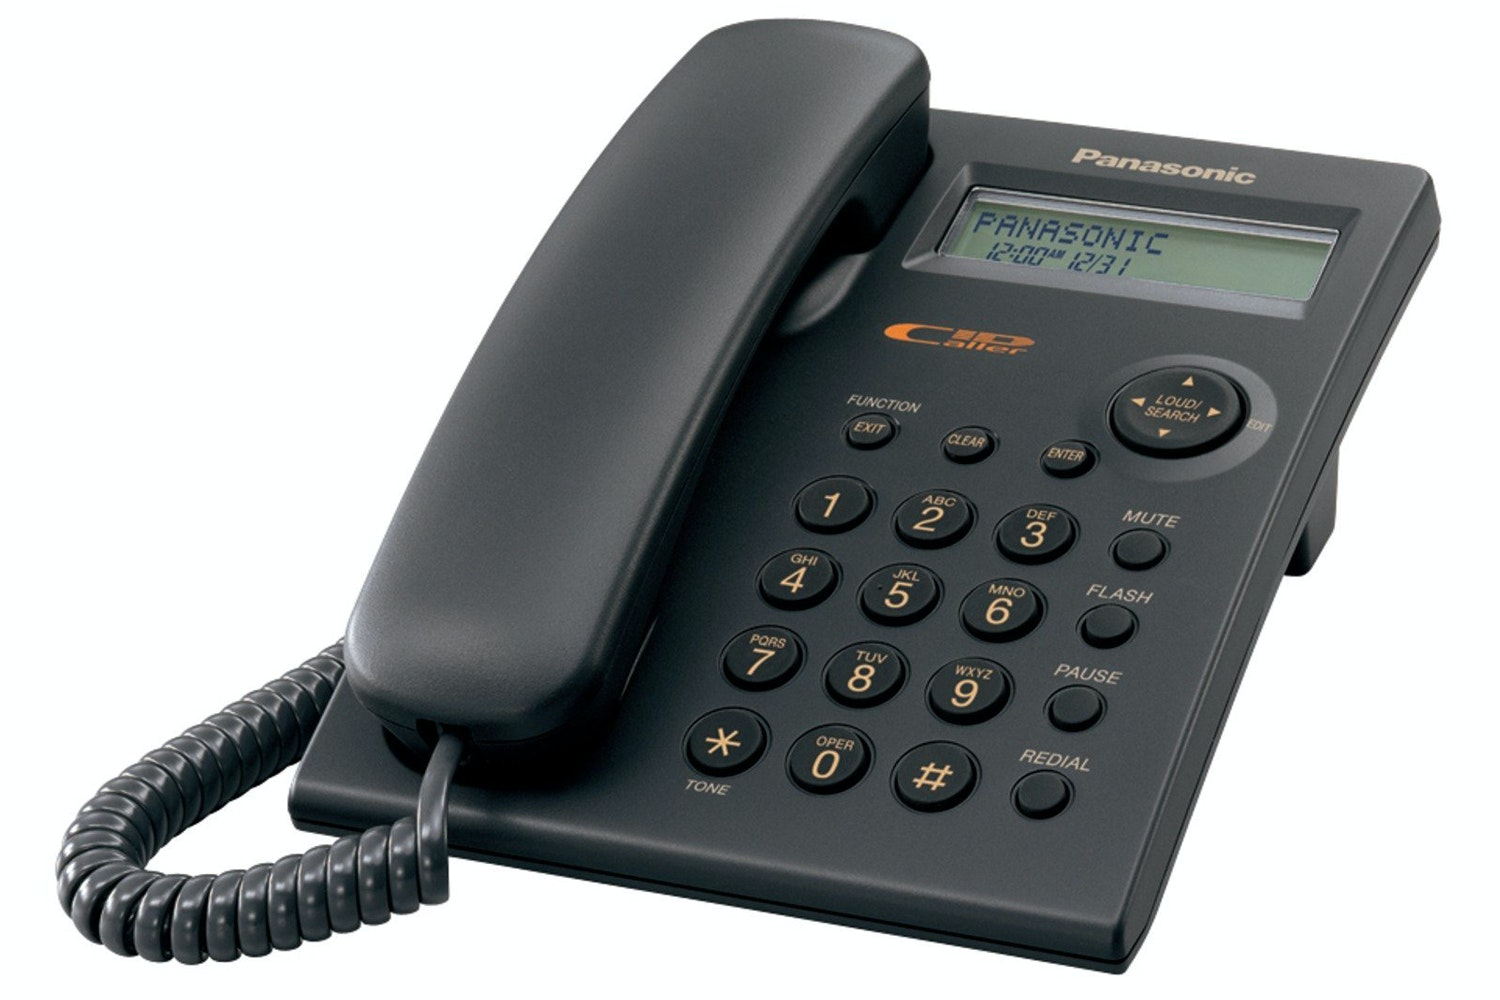 Panasonic KXT 11 Desk Phone